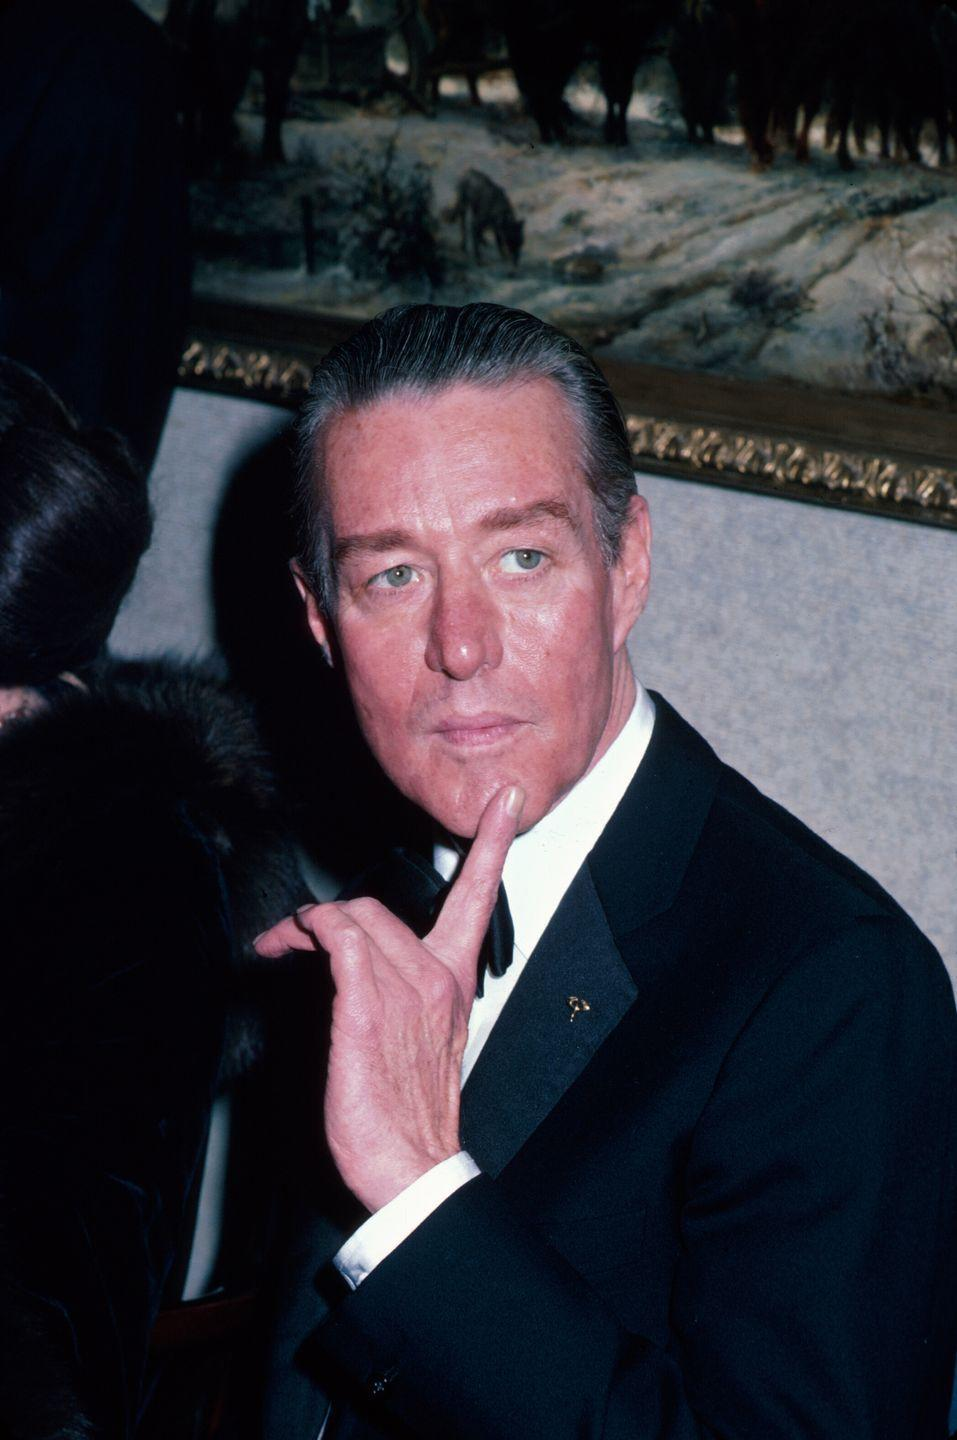 """<p>The fashion designer is shown here in one of his last portraits before going into seclusion. Halston's brother, Robert Frowick, <a href=""""https://apnews.com/article/85a6d4cf602bb5359acee5373566f30d"""" rel=""""nofollow noopener"""" target=""""_blank"""" data-ylk=""""slk:told the Associated Press"""" class=""""link rapid-noclick-resp"""">told the Associated Press</a> that the designer spent his final months visiting with his siblings and driving the California coast in his beloved Rolls Royce. He died in San Francisco on <a href=""""https://apnews.com/article/85a6d4cf602bb5359acee5373566f30d"""" rel=""""nofollow noopener"""" target=""""_blank"""" data-ylk=""""slk:March 26, 1990"""" class=""""link rapid-noclick-resp"""">March 26, 1990</a> of AIDS-related cancer. He was 57.</p>"""